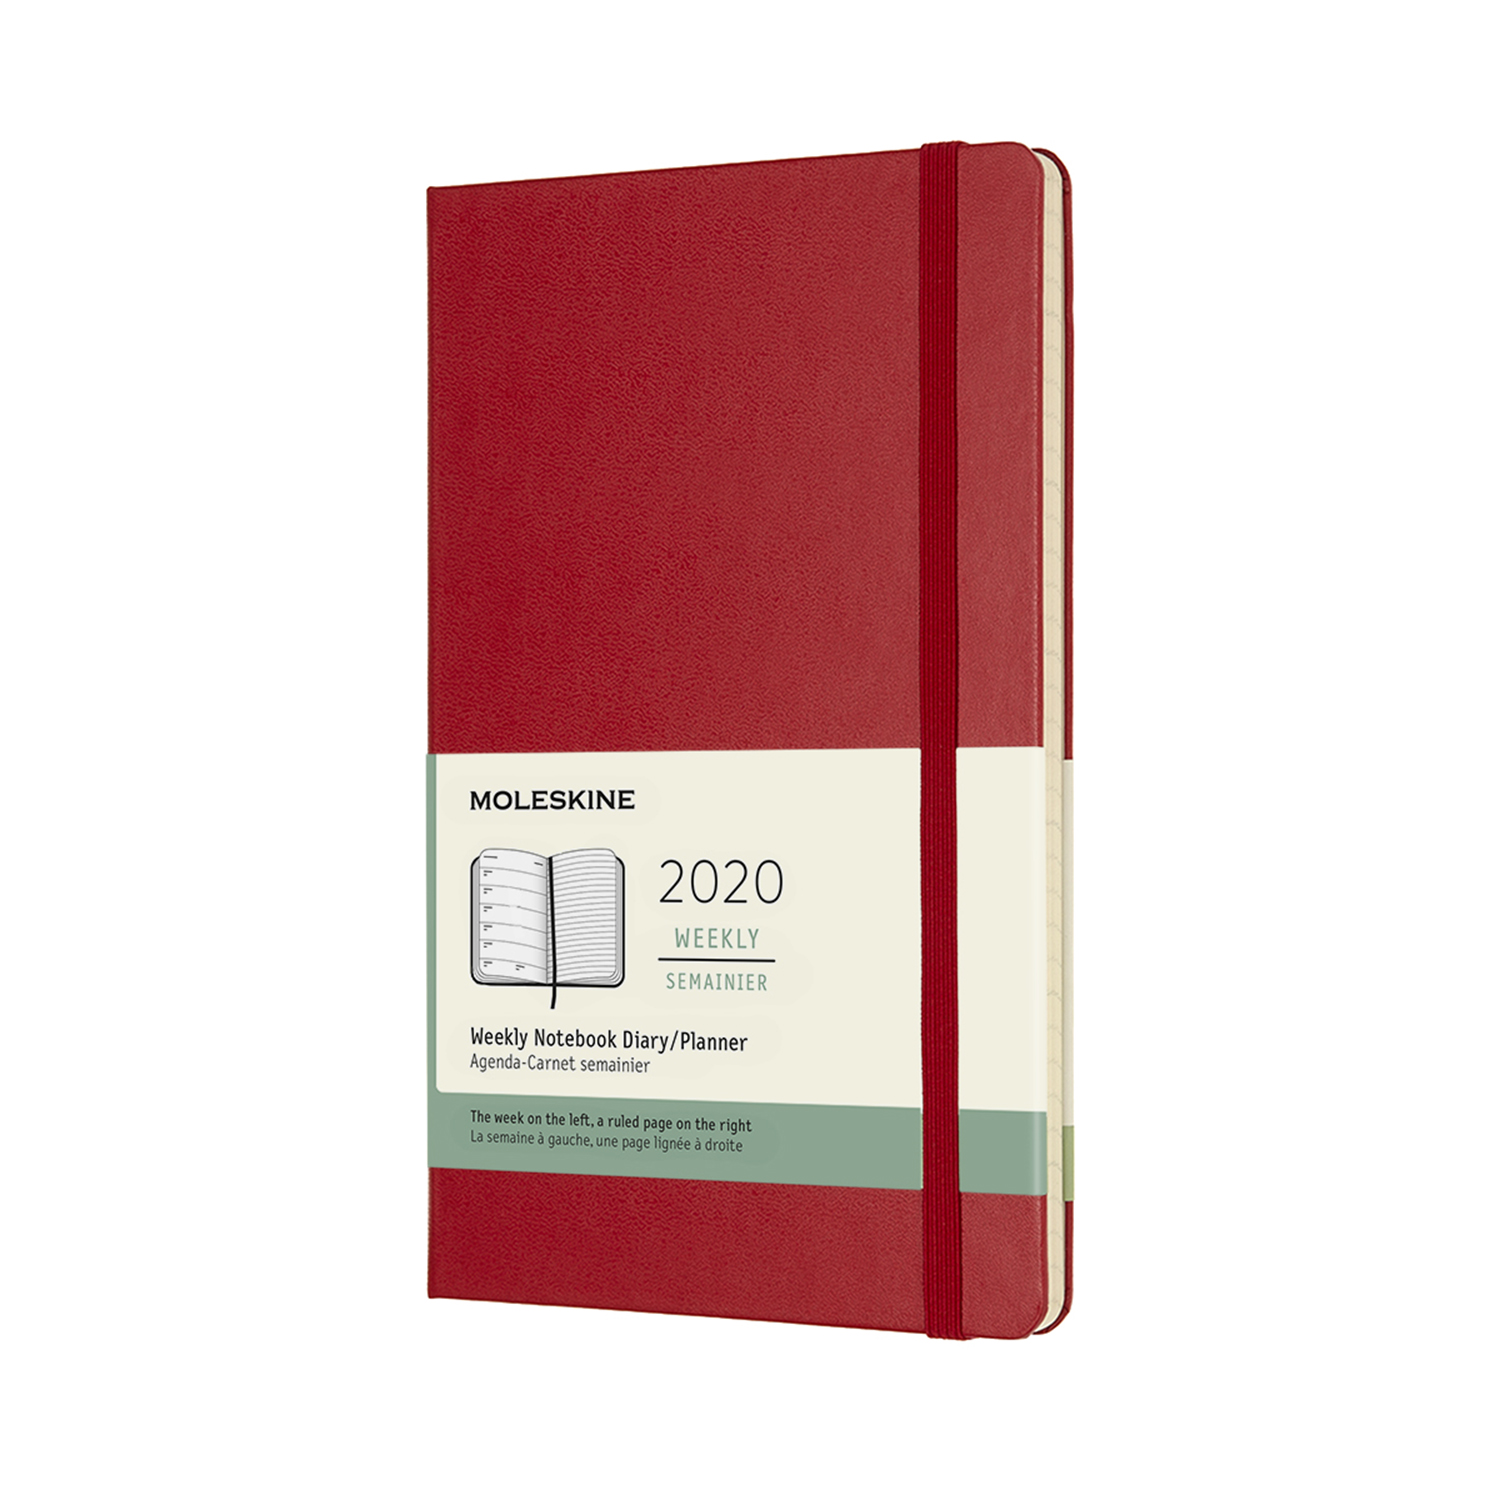 SCARLET RED WEEKLY LARGE HARDCOVER 2020 DIARY